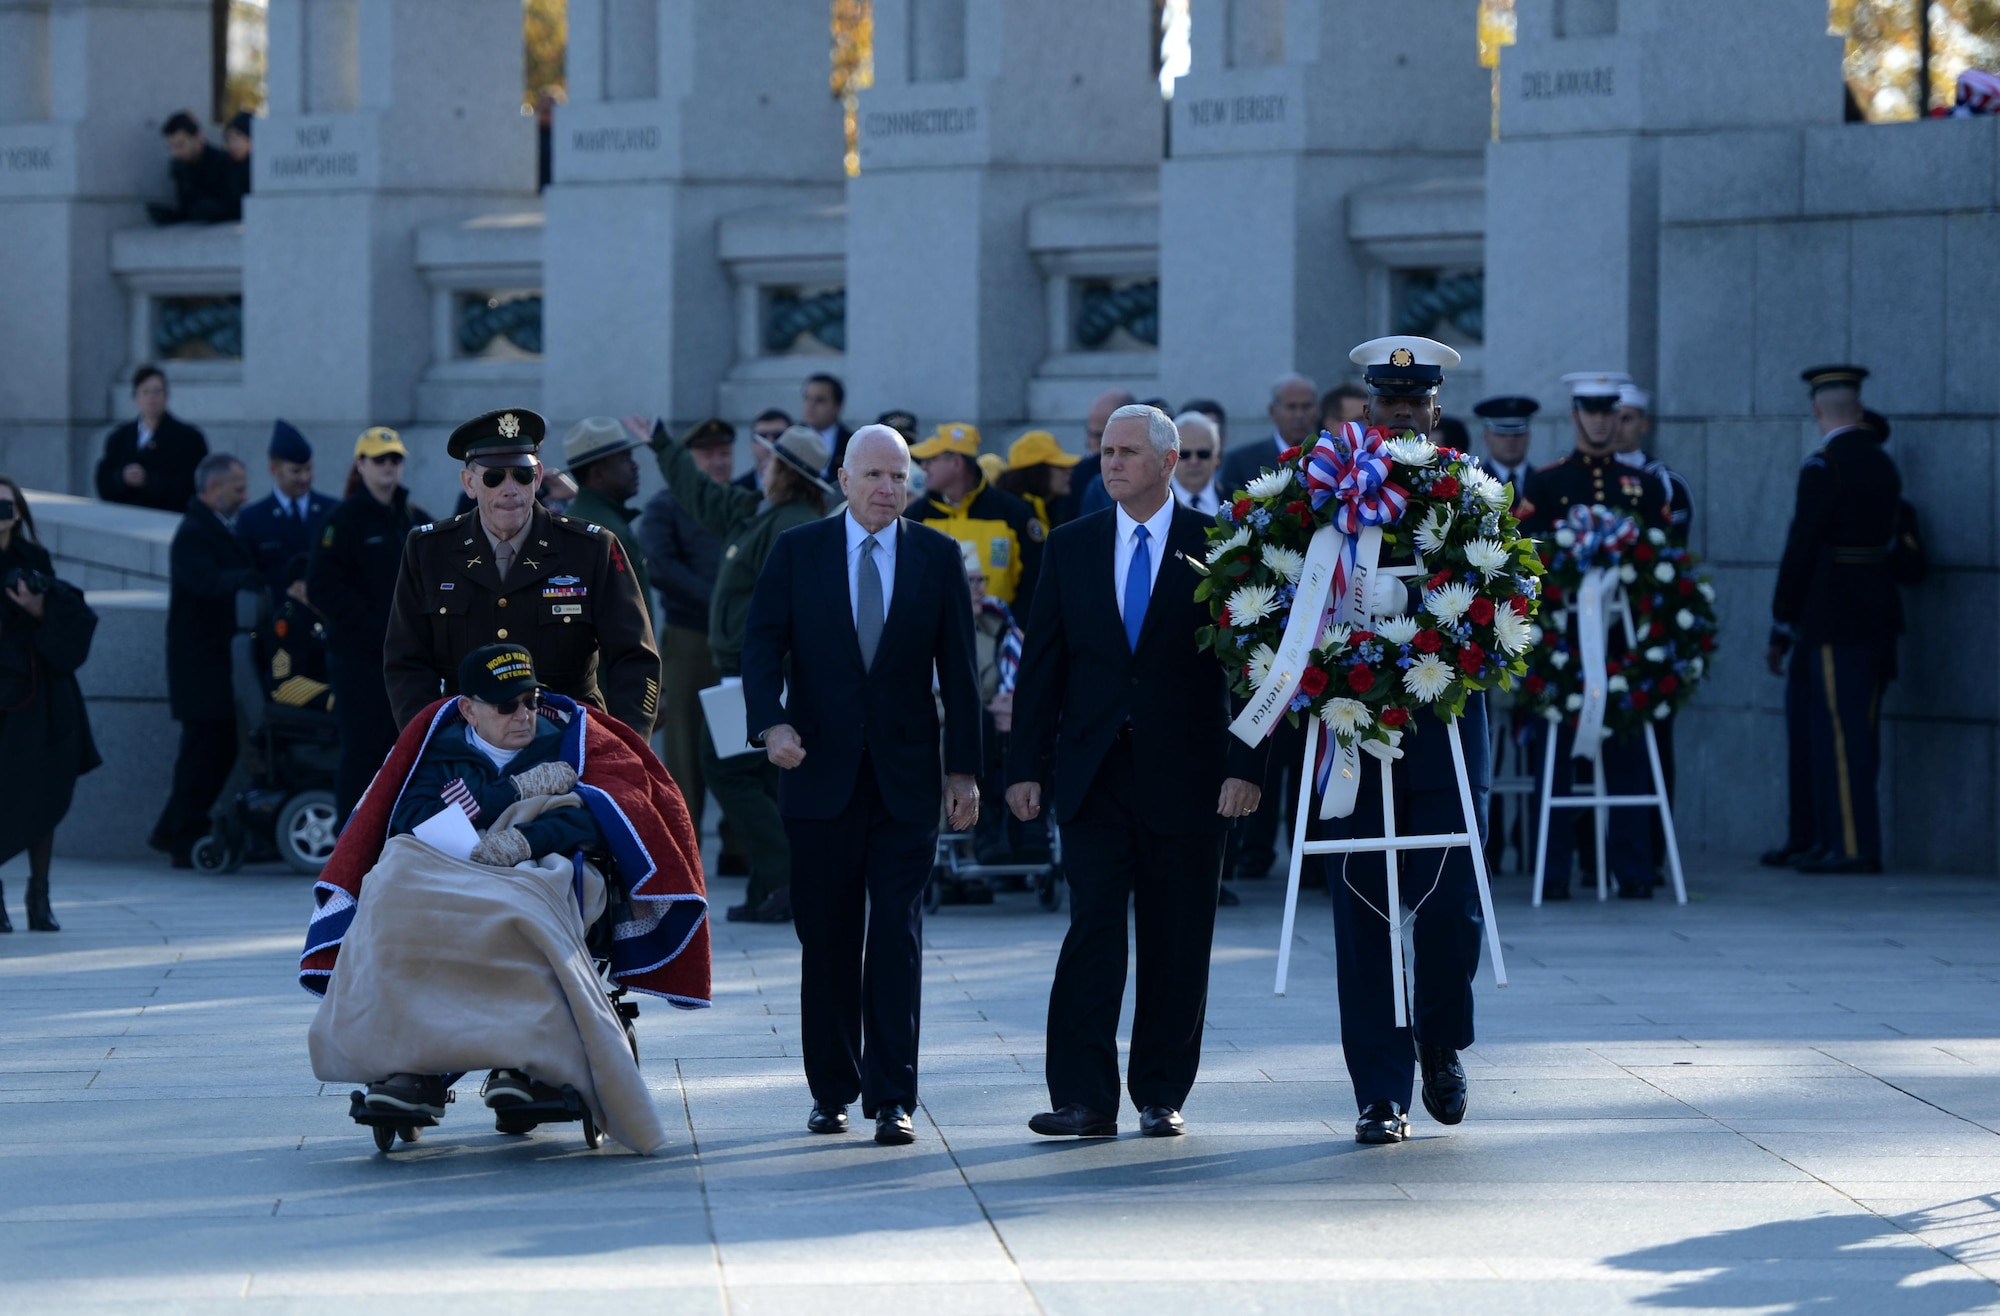 World War II veteran William Flatters, U.S. Sen. John McCain and Vice President-elect Mike Pence walk toward the location they will be laying a wreath during the 2016 Pearl Harbor Remembrance Day 75th Anniversary Commemoration at the World War II Memorial in Washington, D.C., Dec. 7, 2016. (U.S. Army photo/Sgt. Jose A. Torres Jr.)